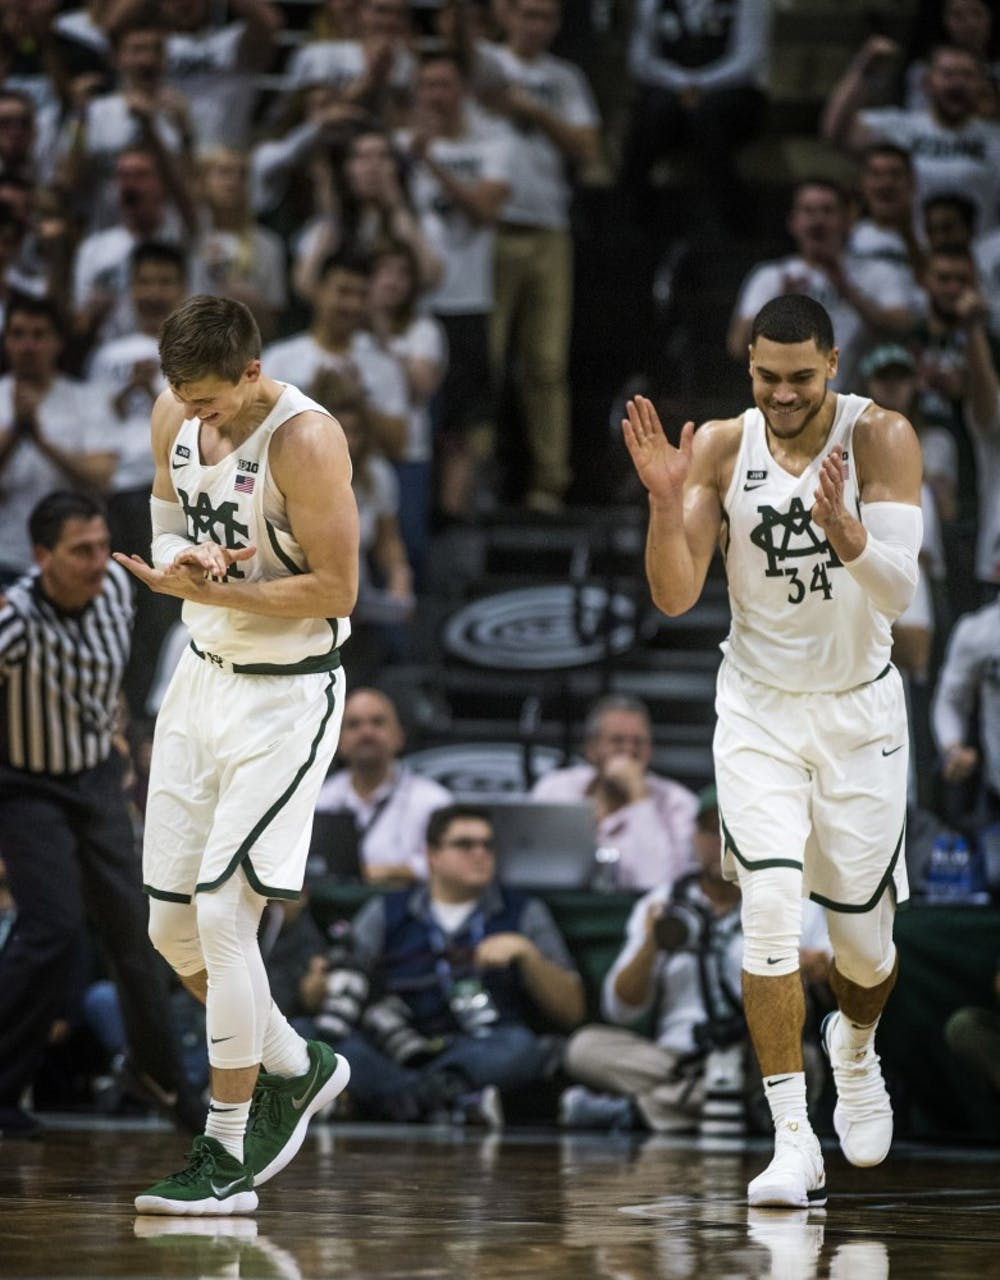 Junior guard Matt McQuaid (20), left, and redshirt senior Gavin Schilling (34) react to a play during the game against Notre Dame on Nov. 30, 2017 at Breslin Center. The Spartans took down the Fighting Irish, 81-63.